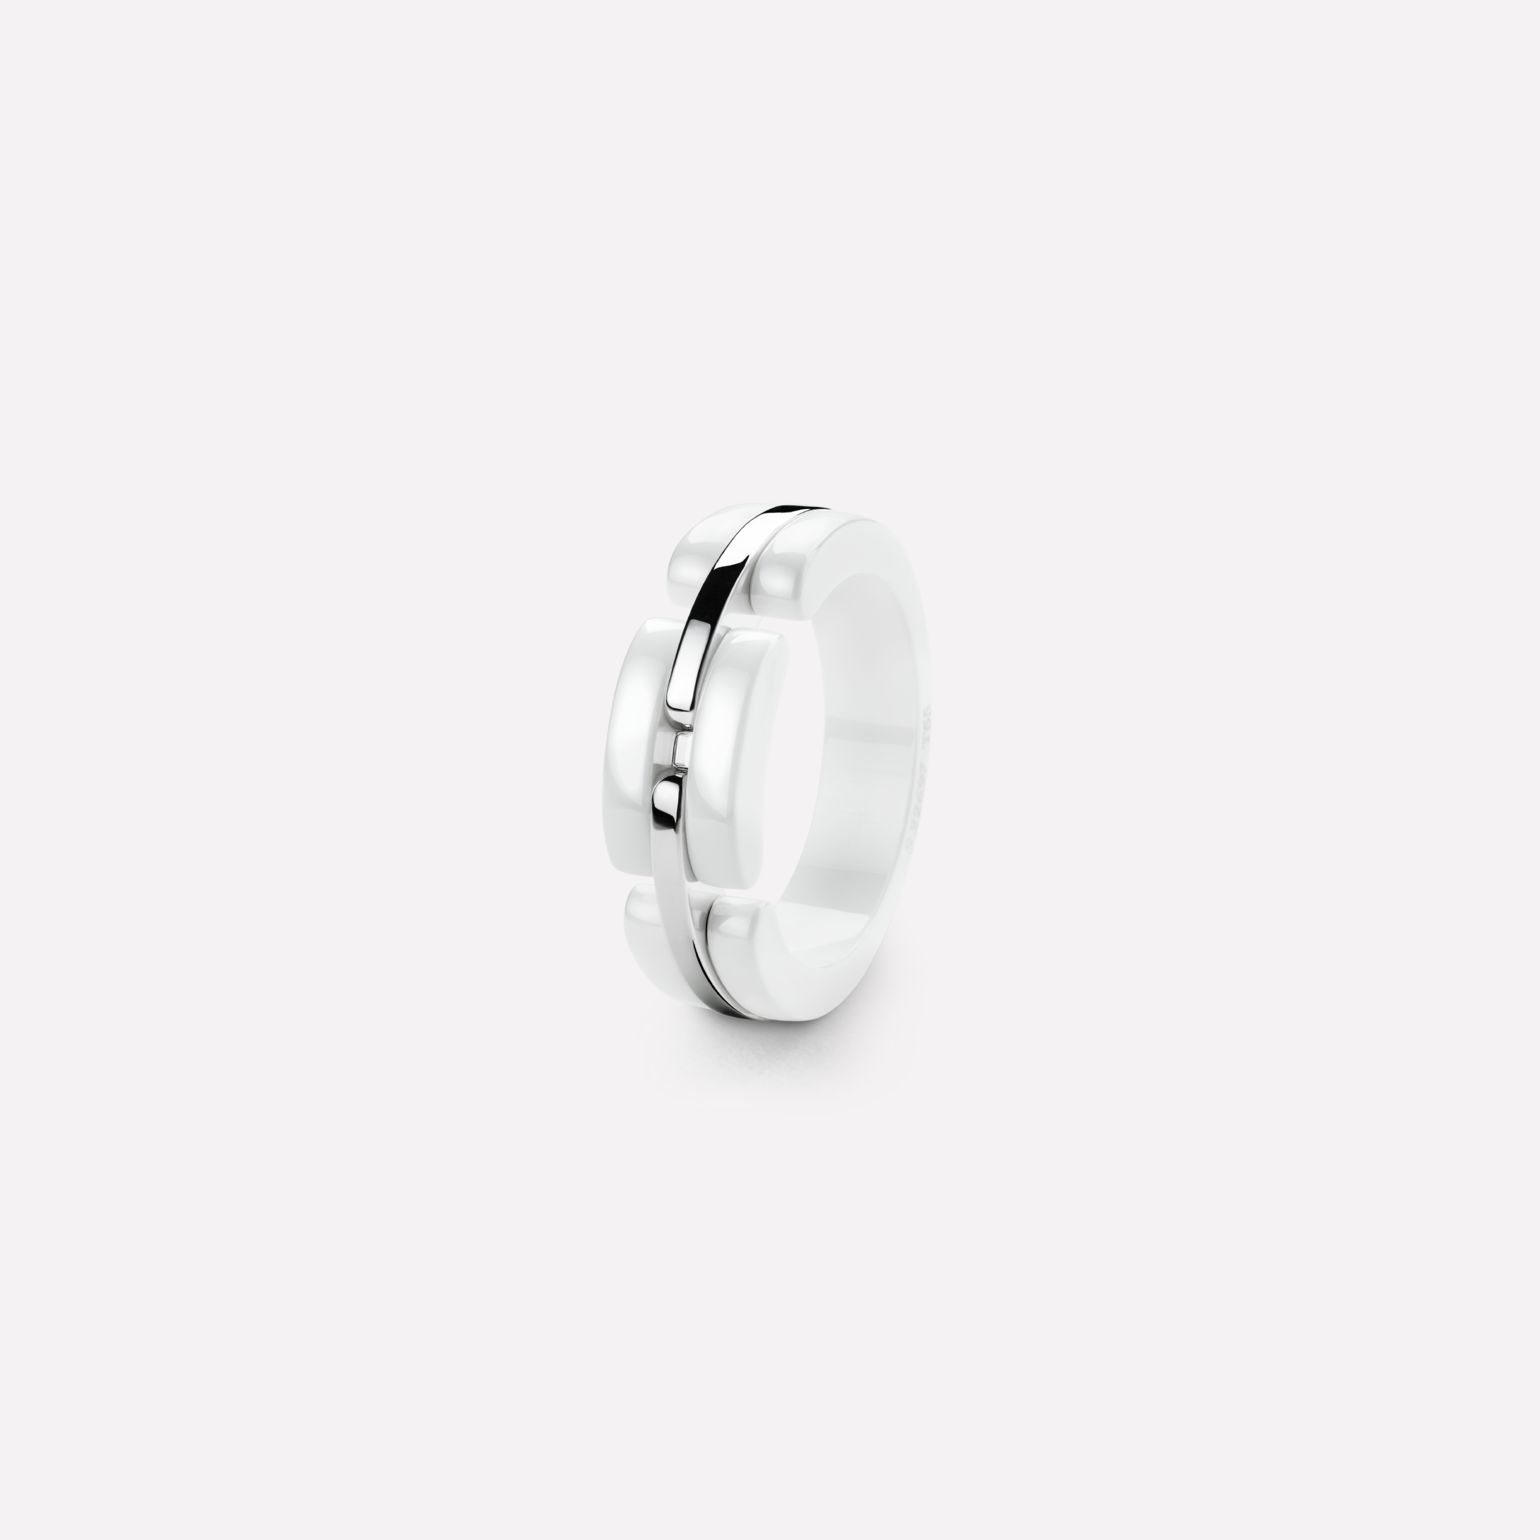 Ultra Ring Ultra ring in white ceramic and 18K white gold. Medium, rigid version.